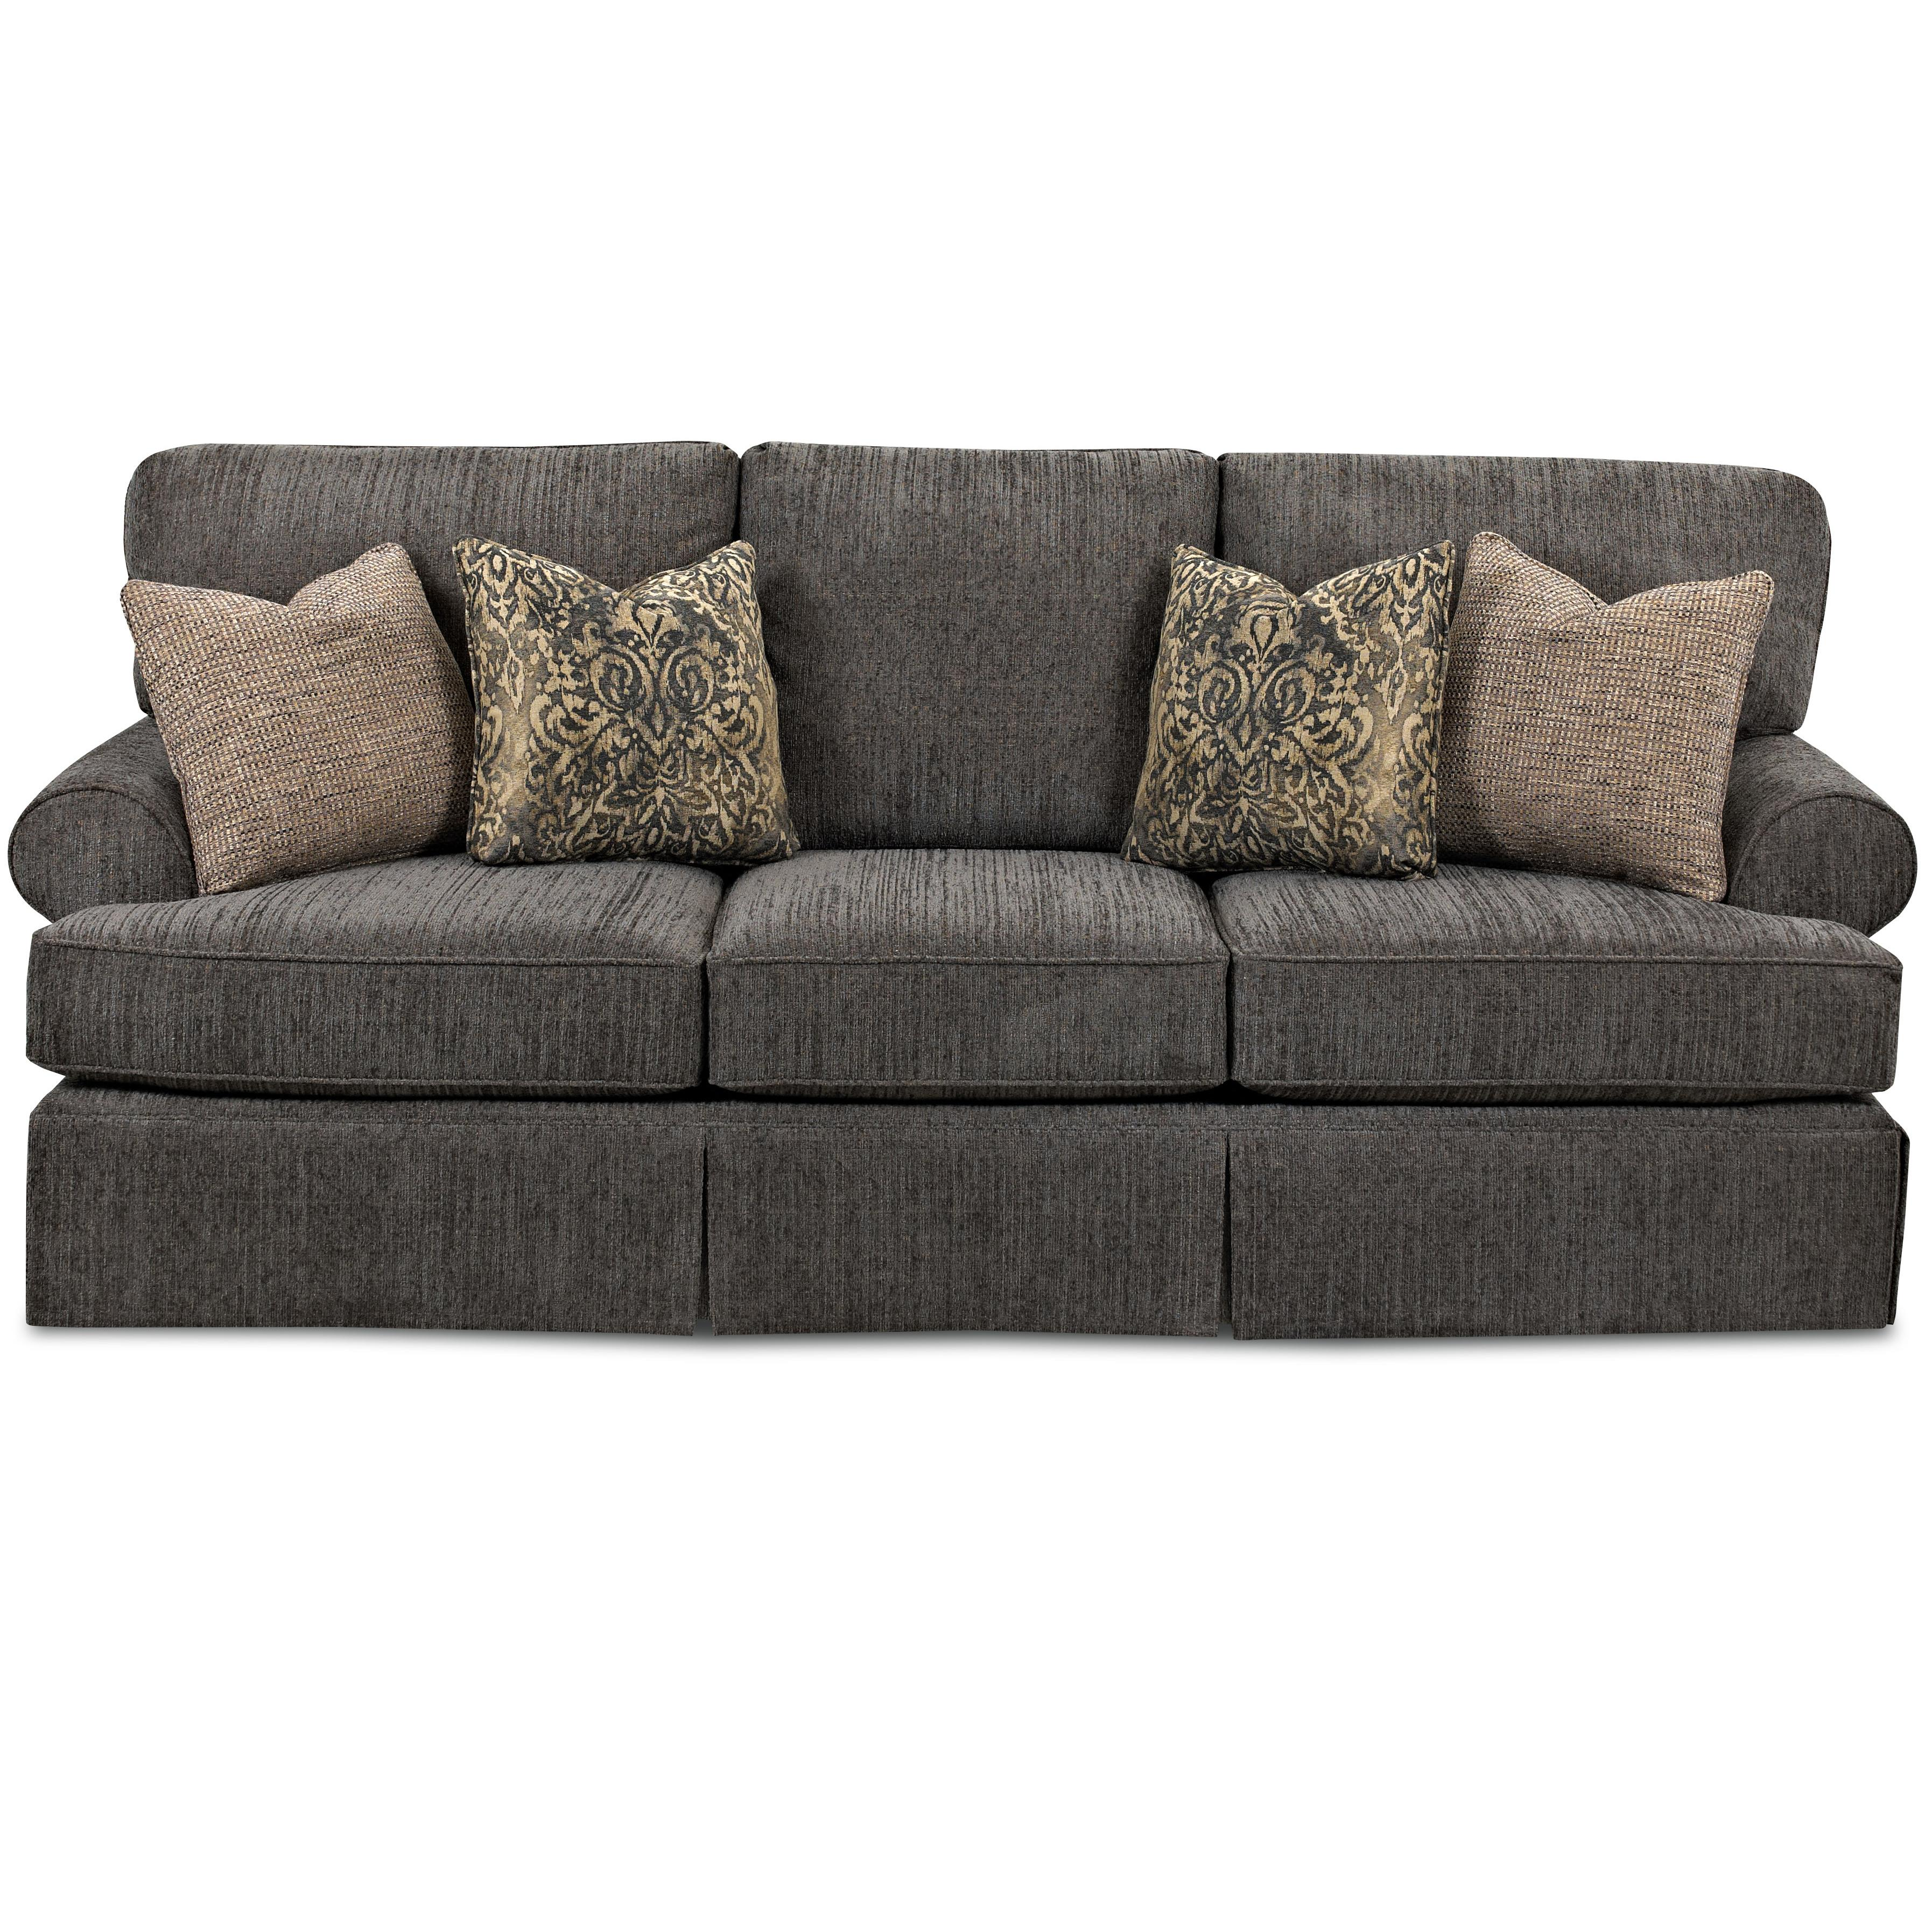 Casual Enso Memory Foam Queen Sofa Sleeper By Klaussner Wolf And Gardiner Wolf Furniture